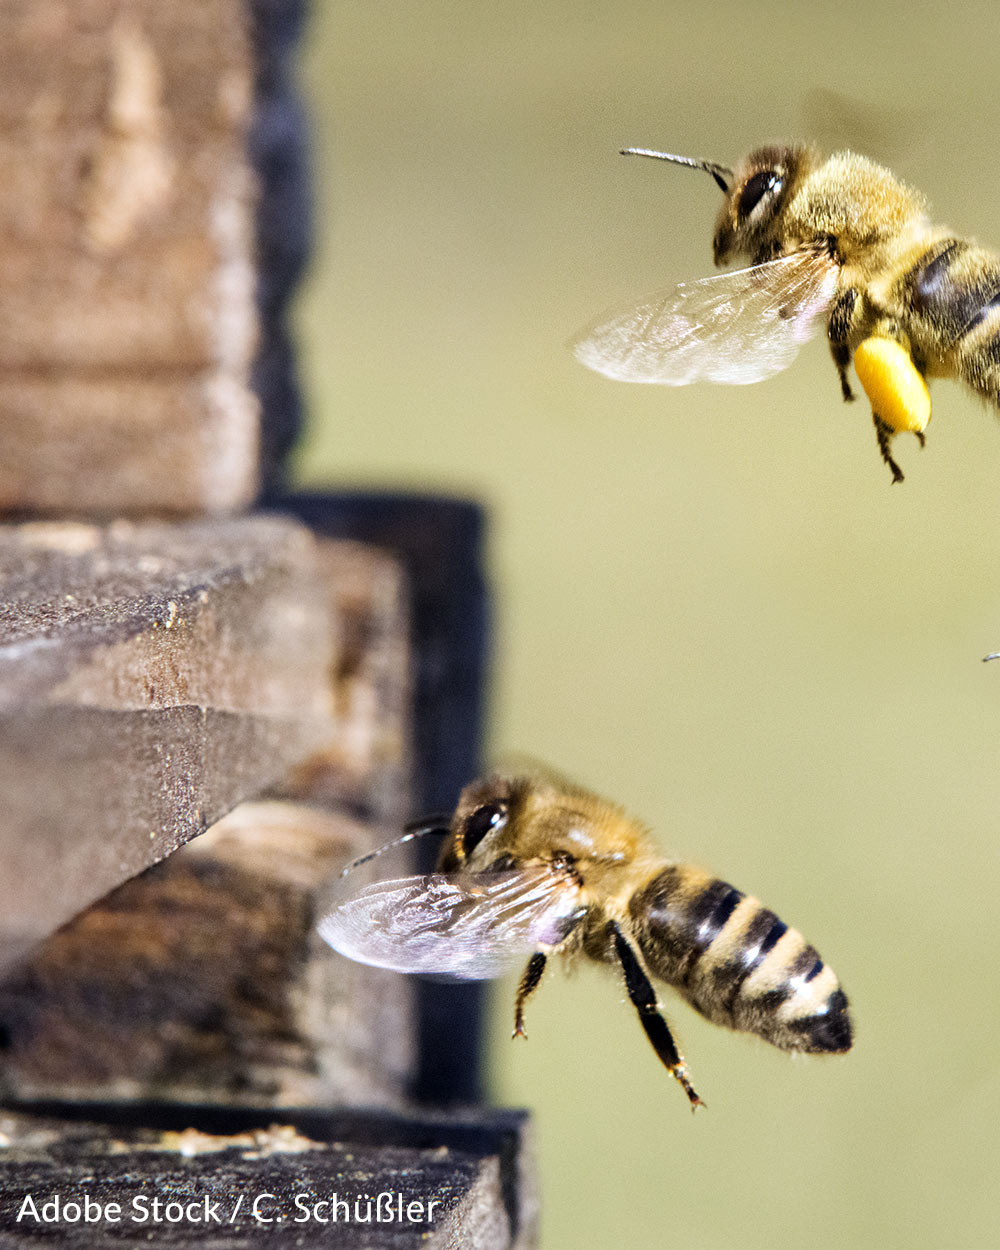 Honeybees are disappearing faster than they can reproduce.